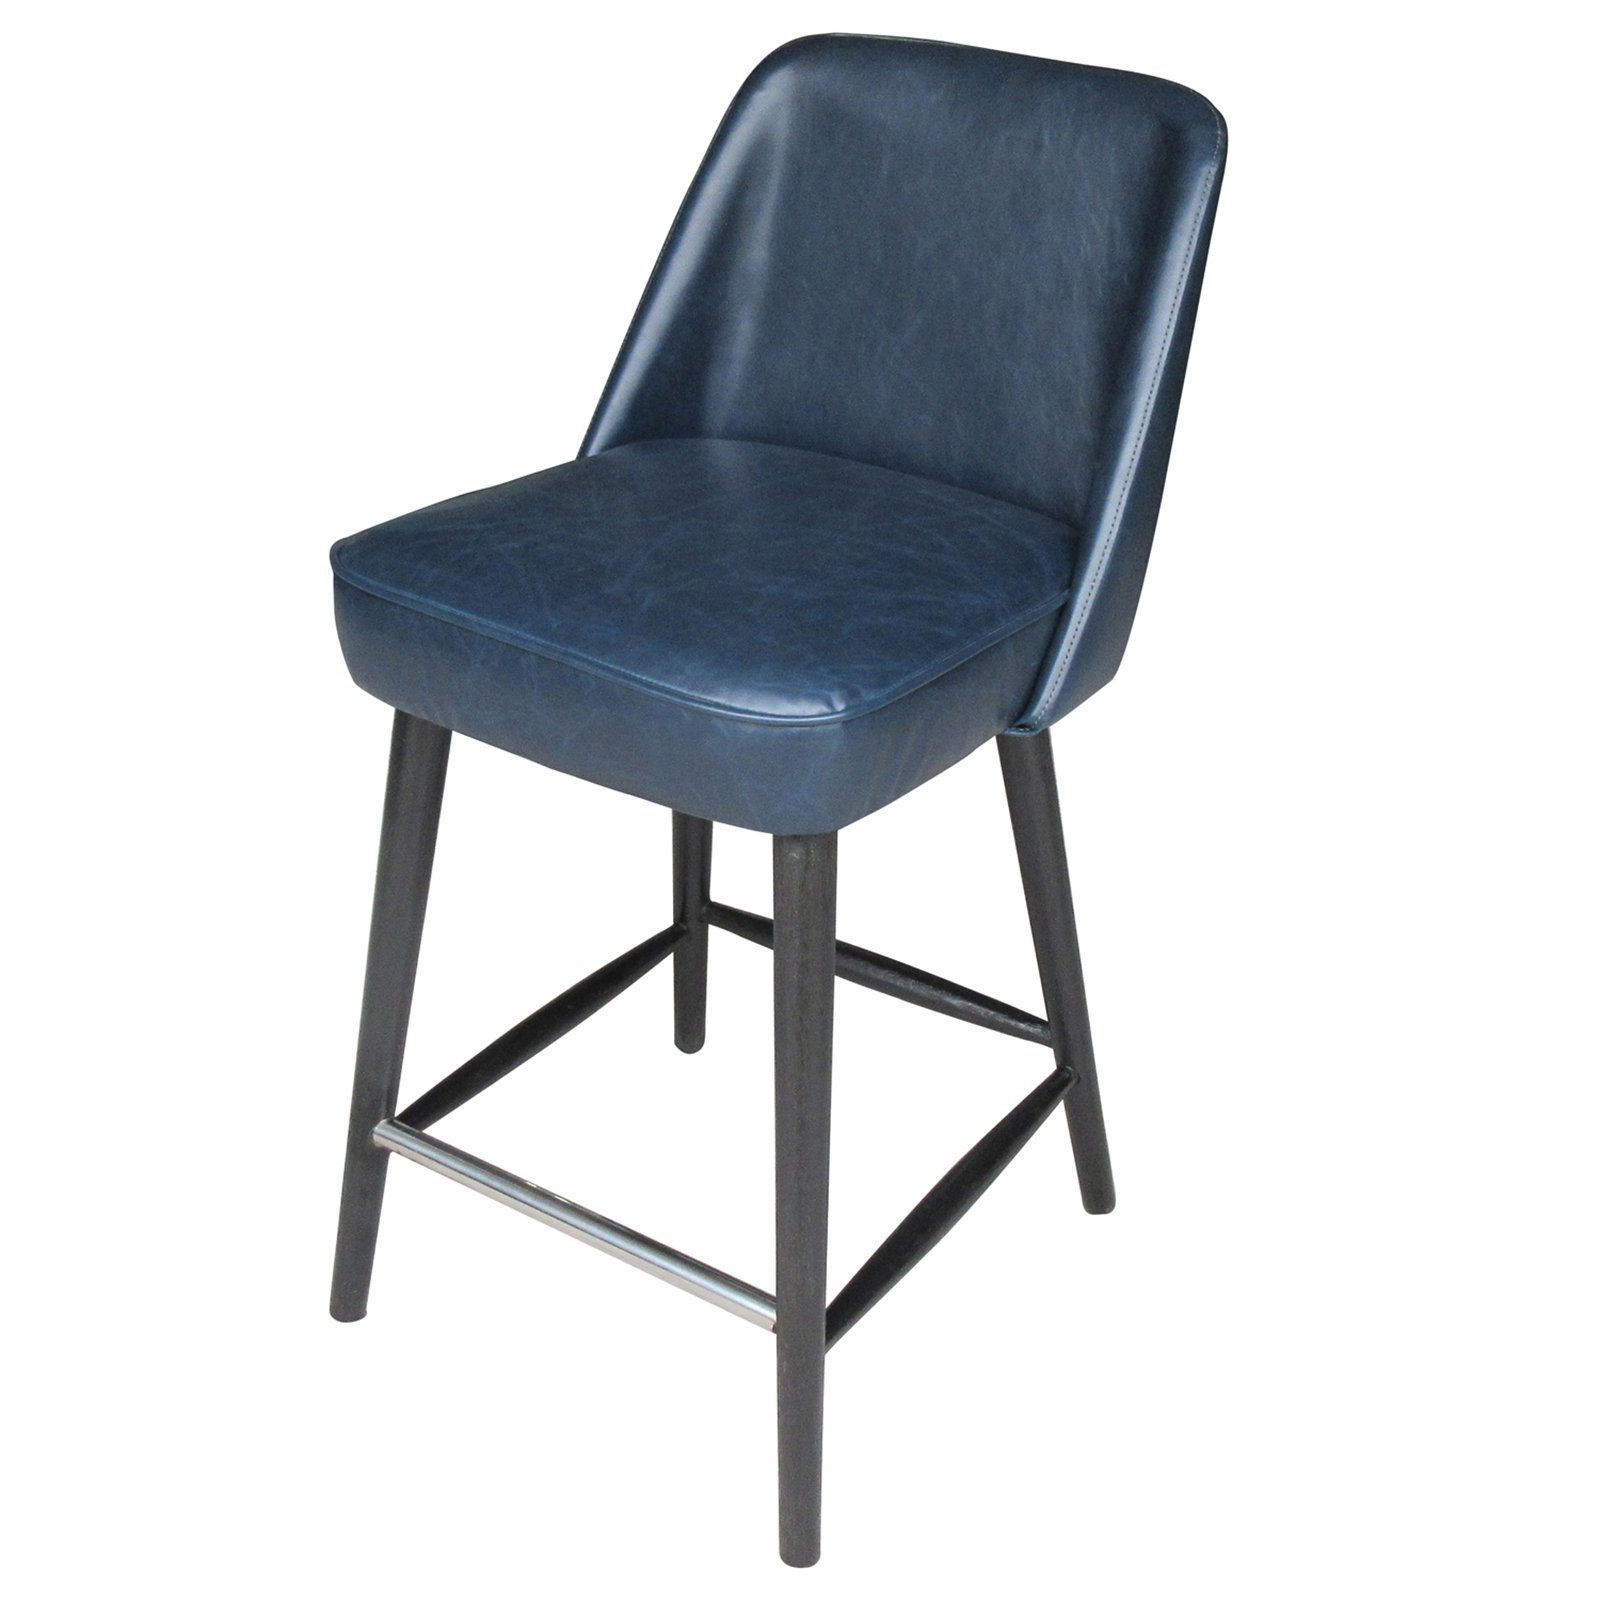 Monica 25 in. Upholstered Counter Height Stool